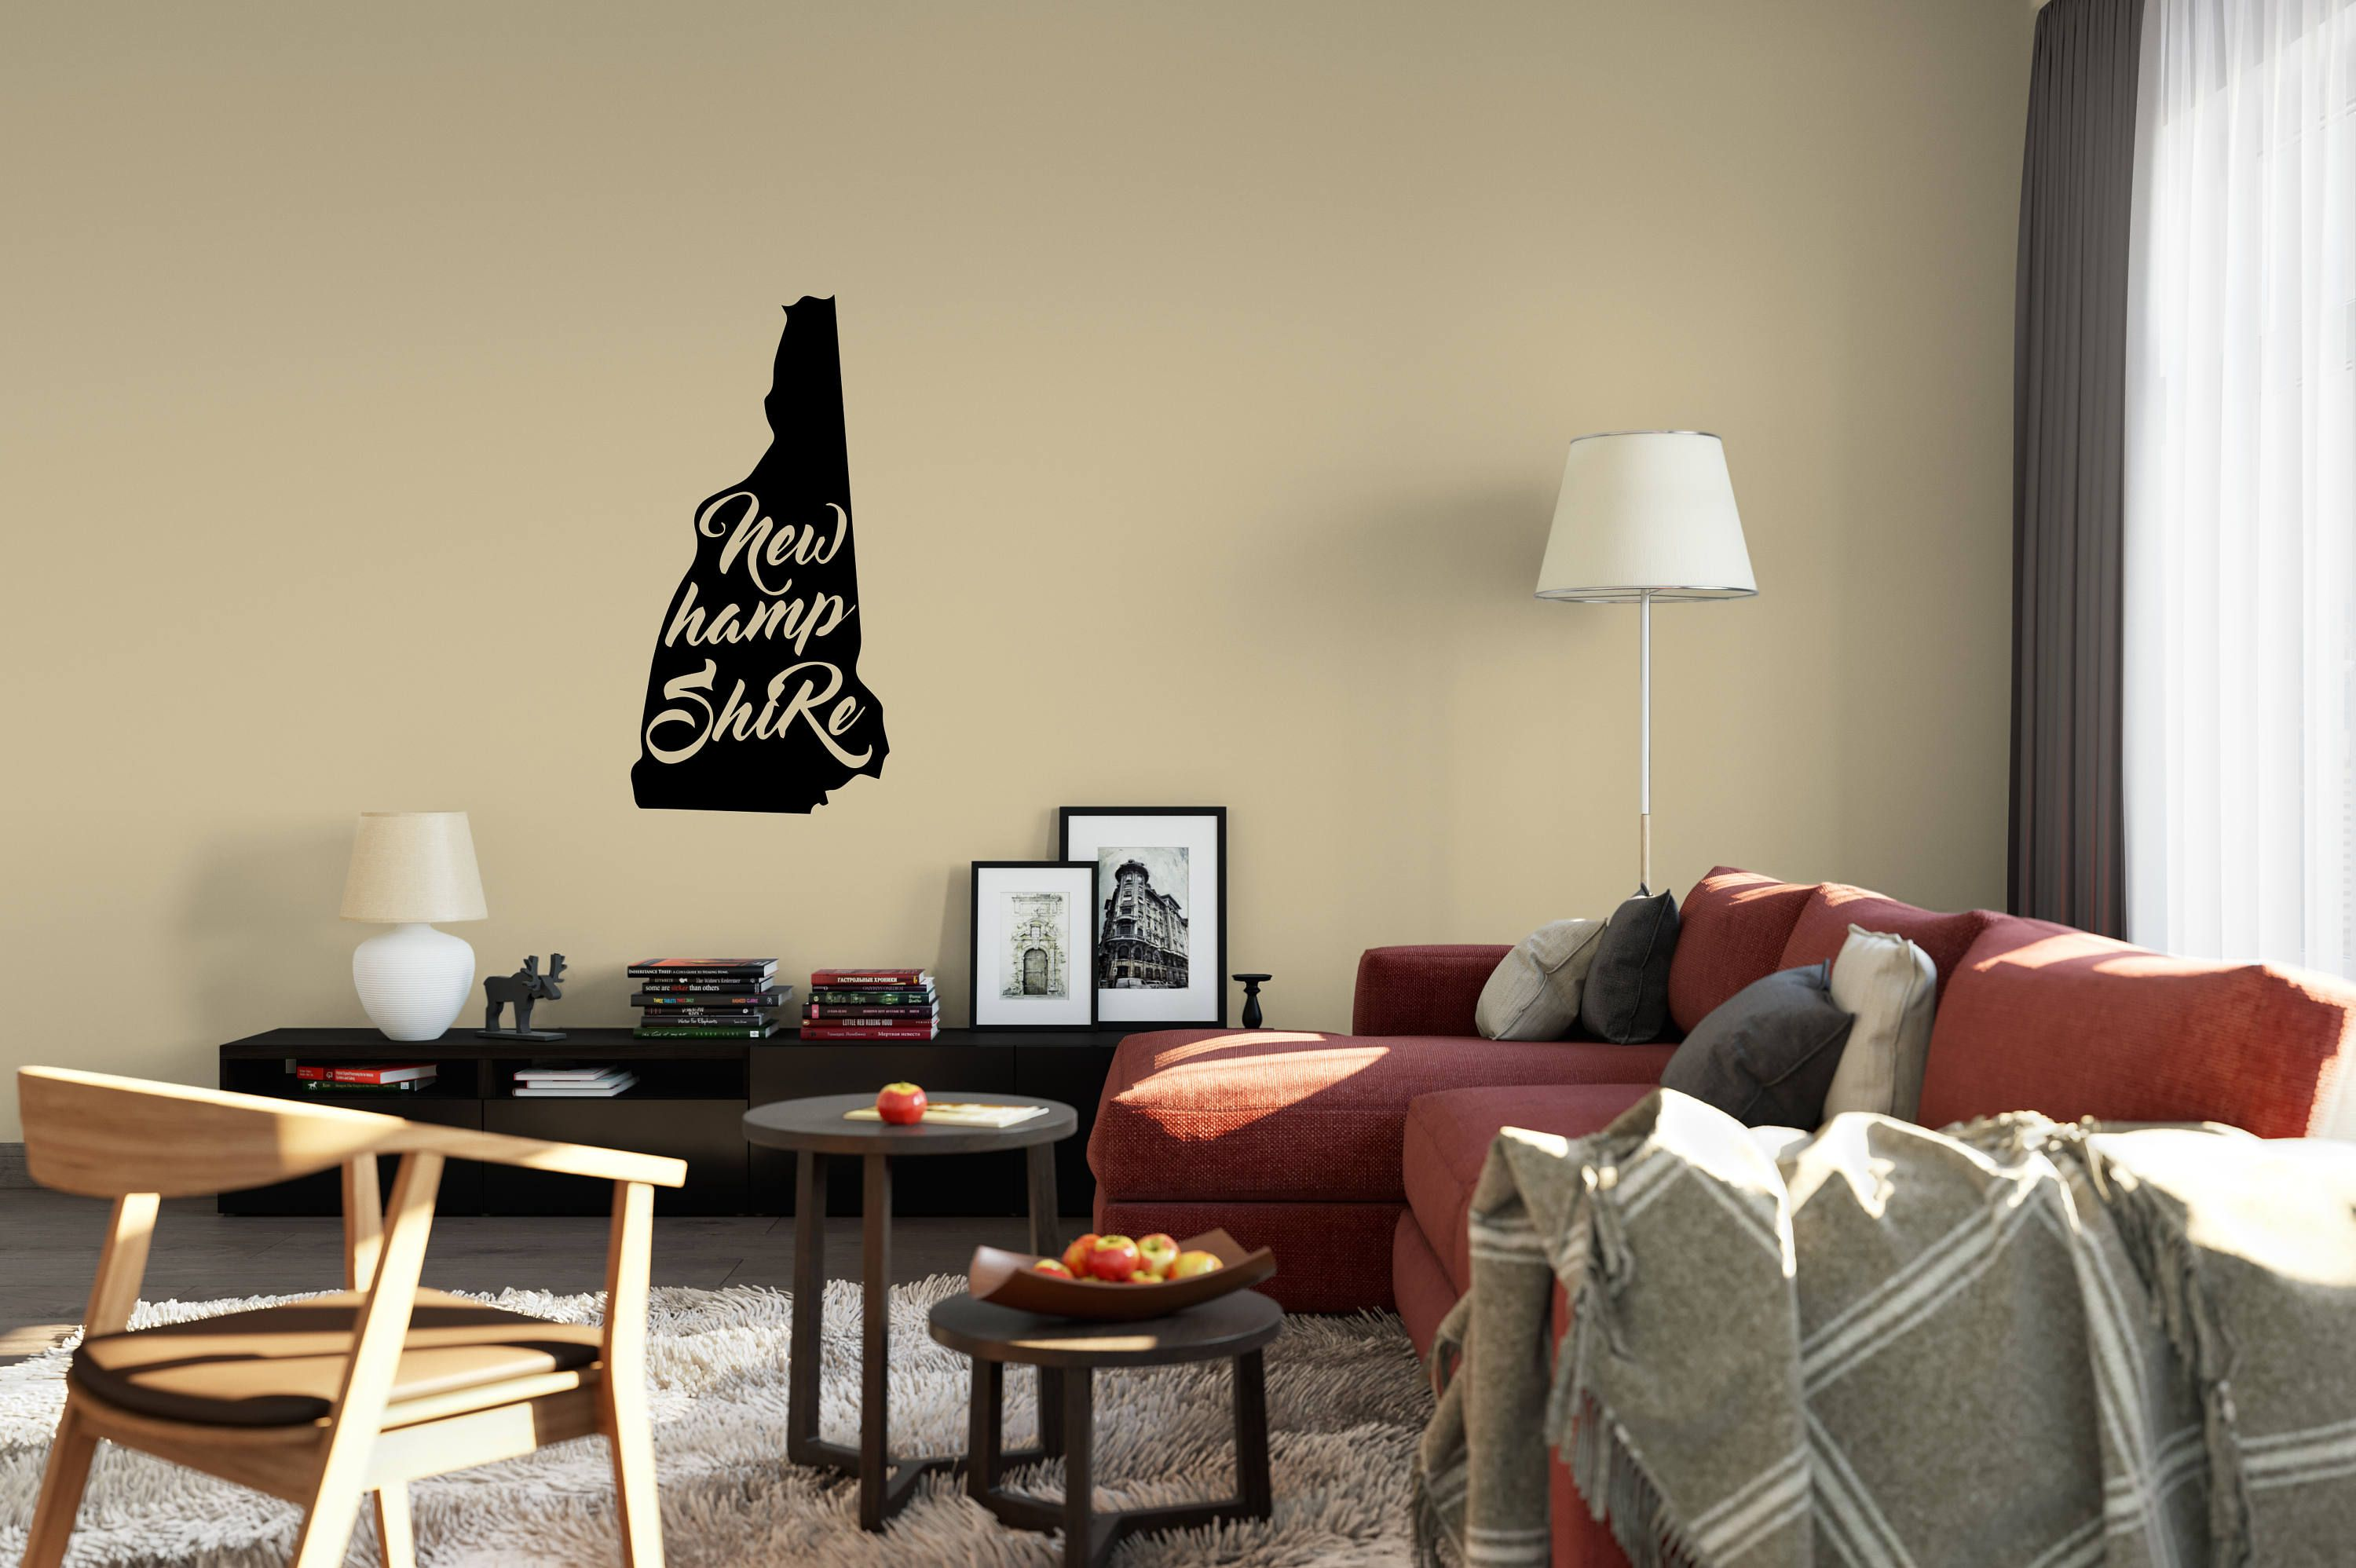 New Hampshire Wall Decal  Small & Large Removable Vinyl